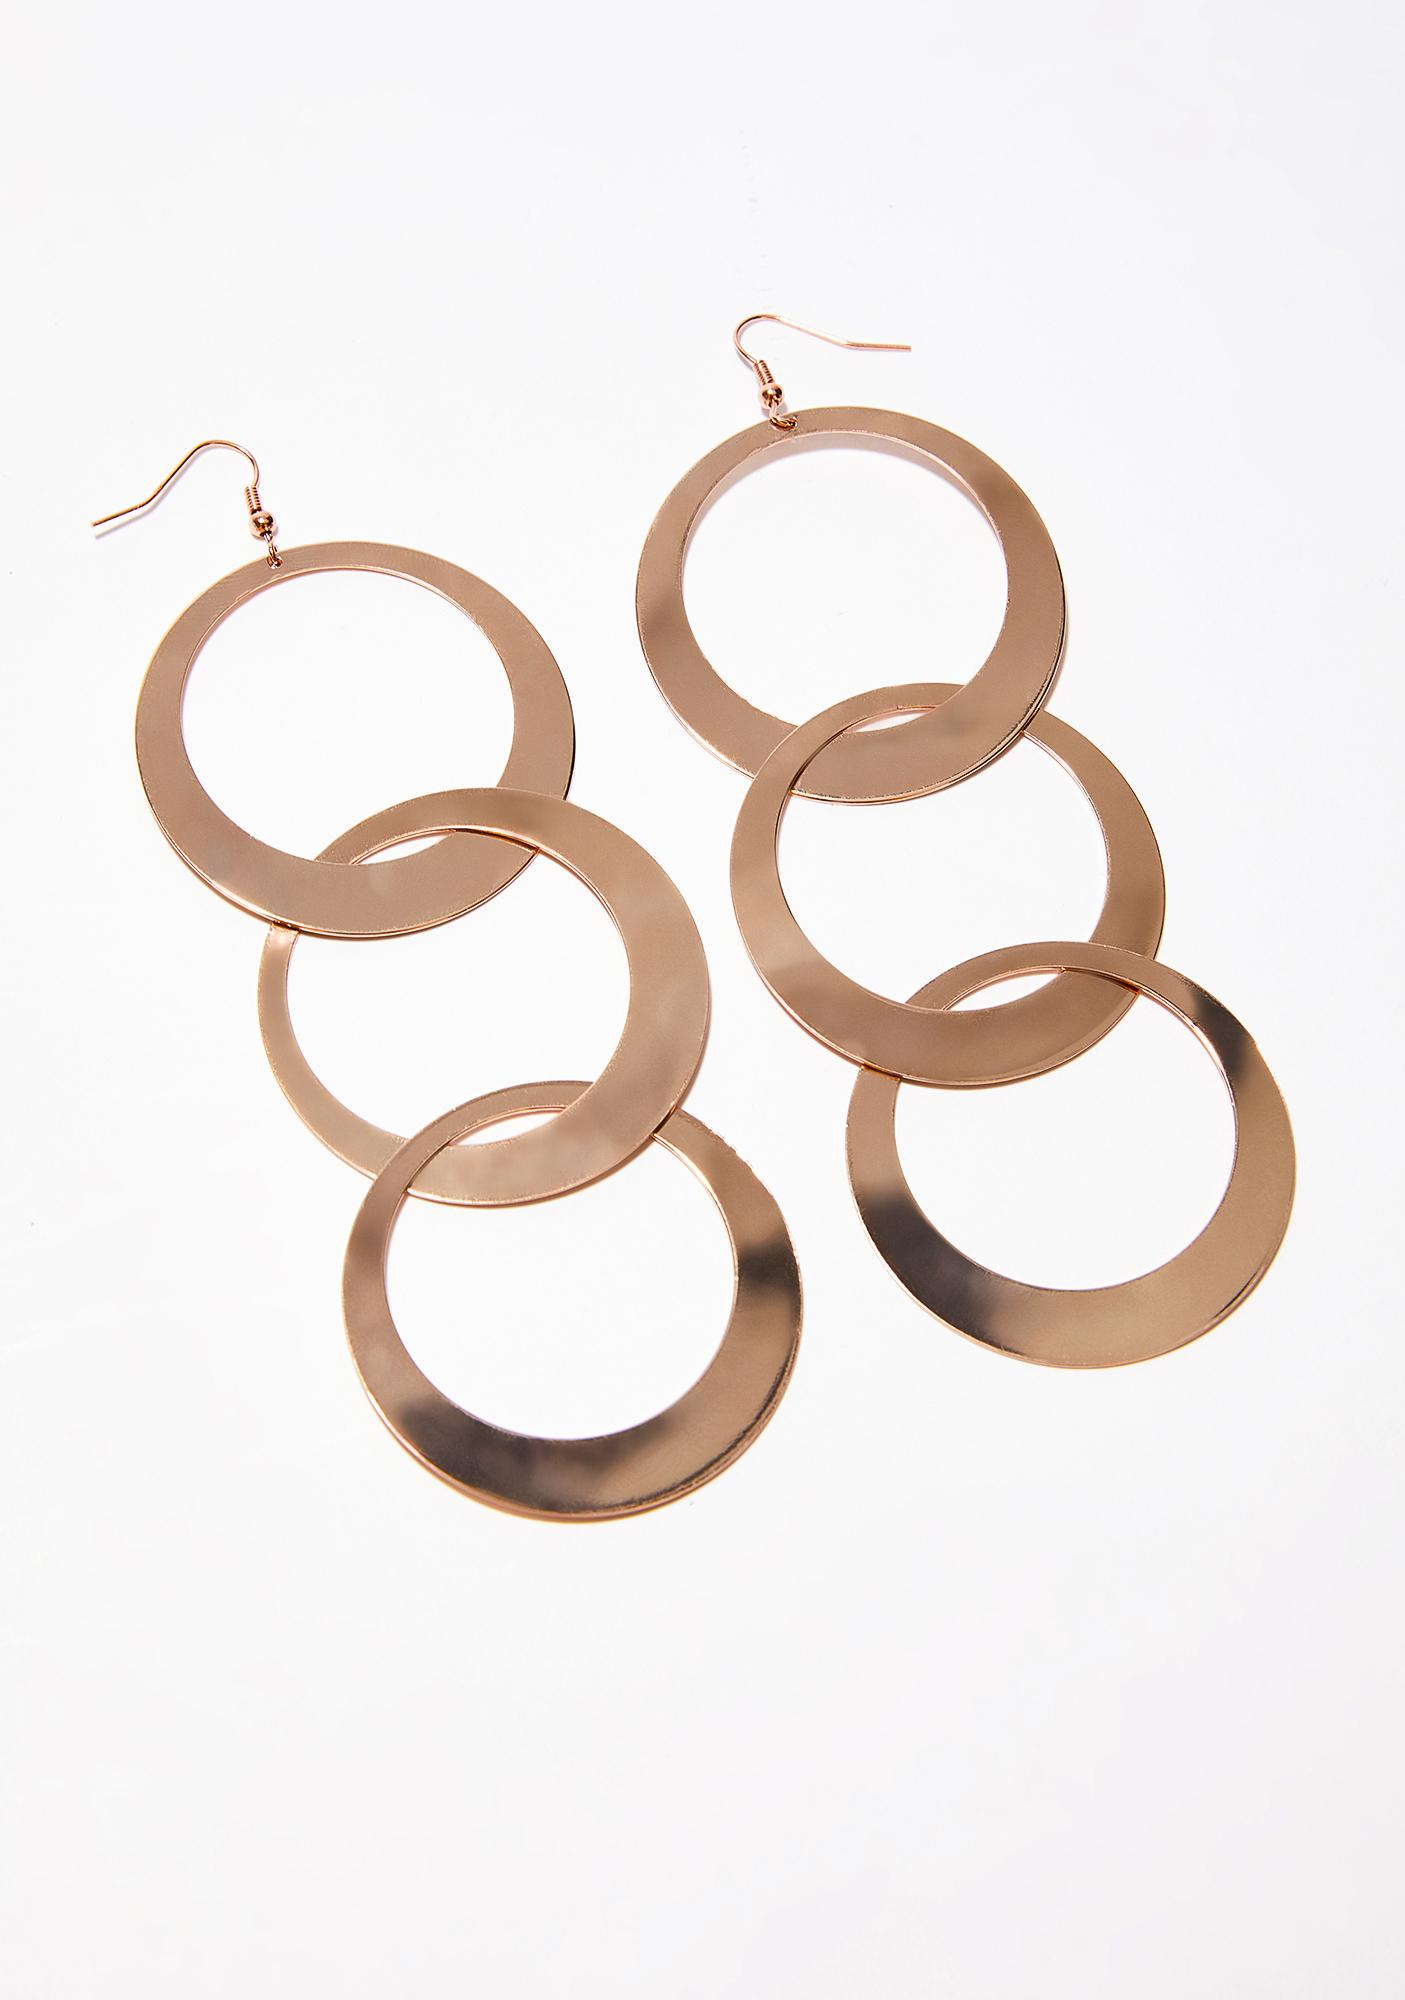 gold shop round co earrings ashley singapore hollow circle hoop jewellery minimalist summer jewelry cheri mon